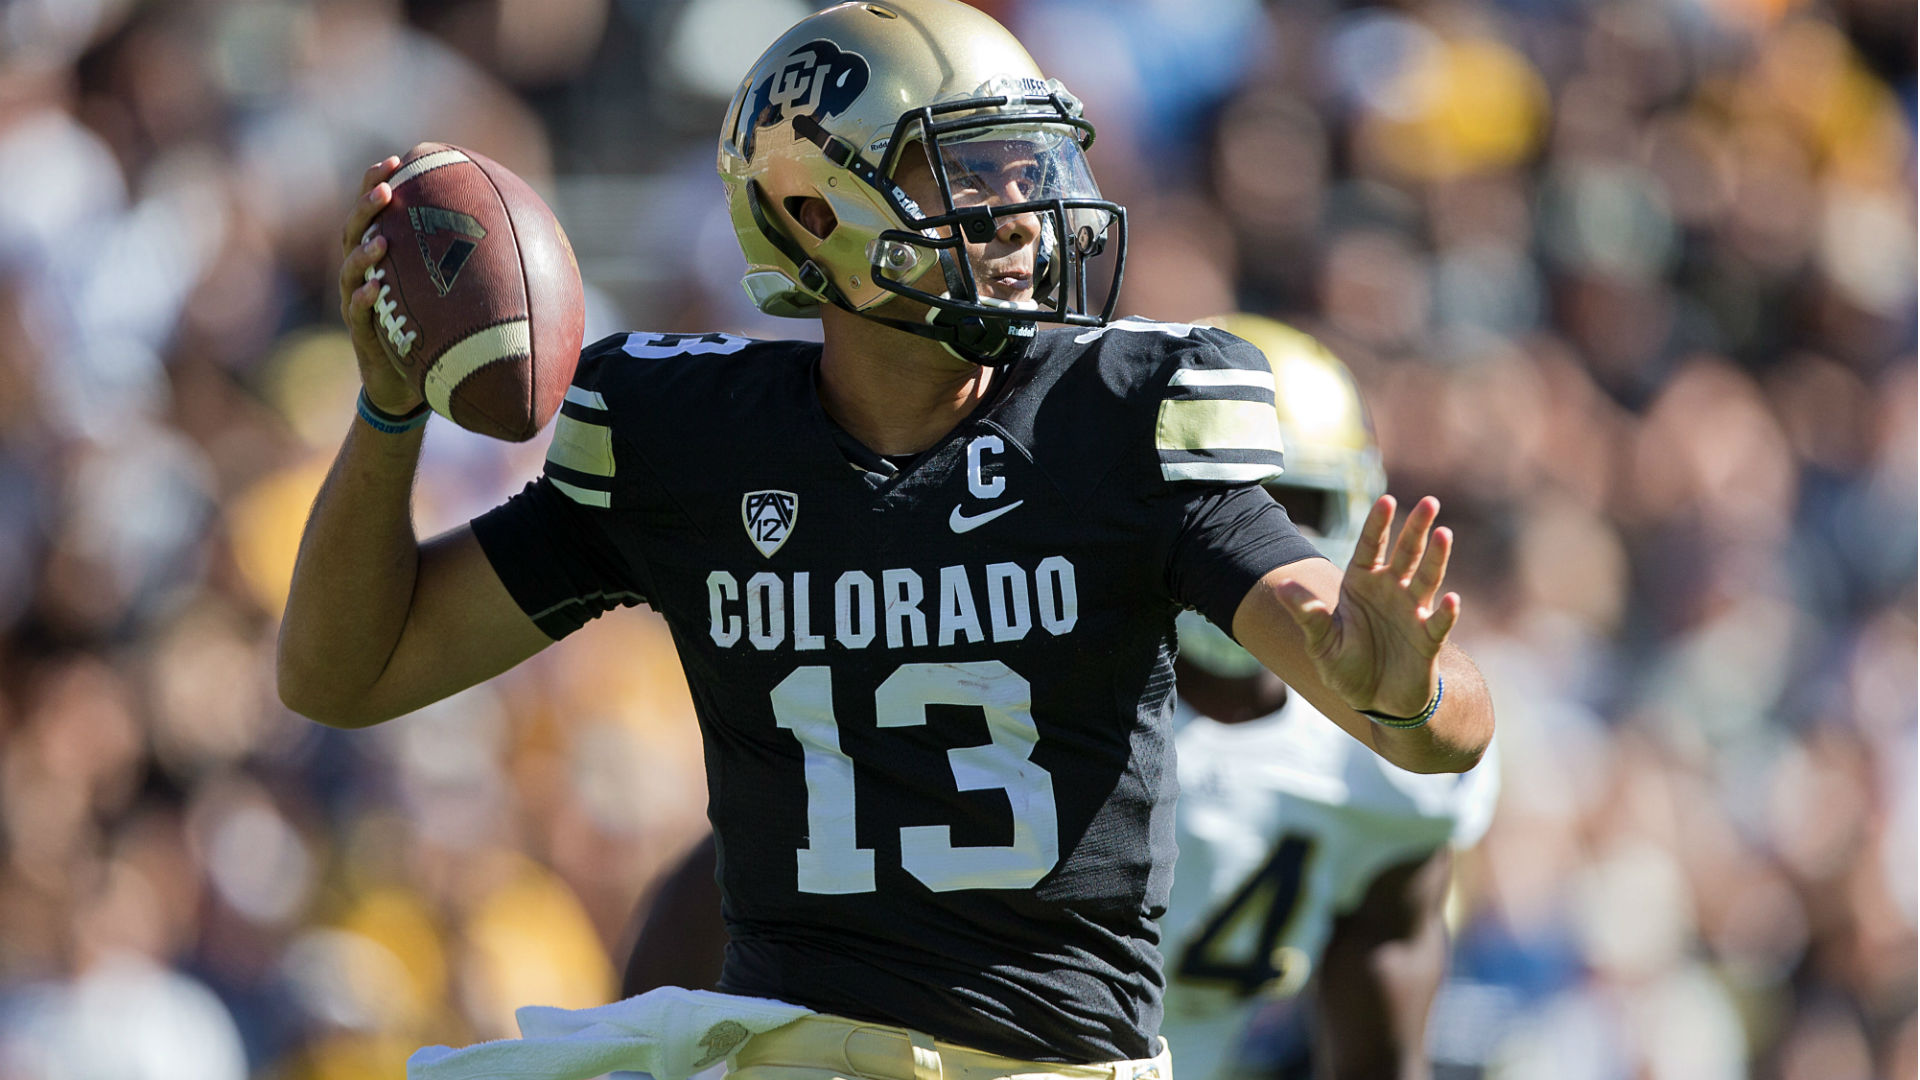 Colorado vs. Oregon betting preview and pick – Ducks and OVER lining bettors' pockets